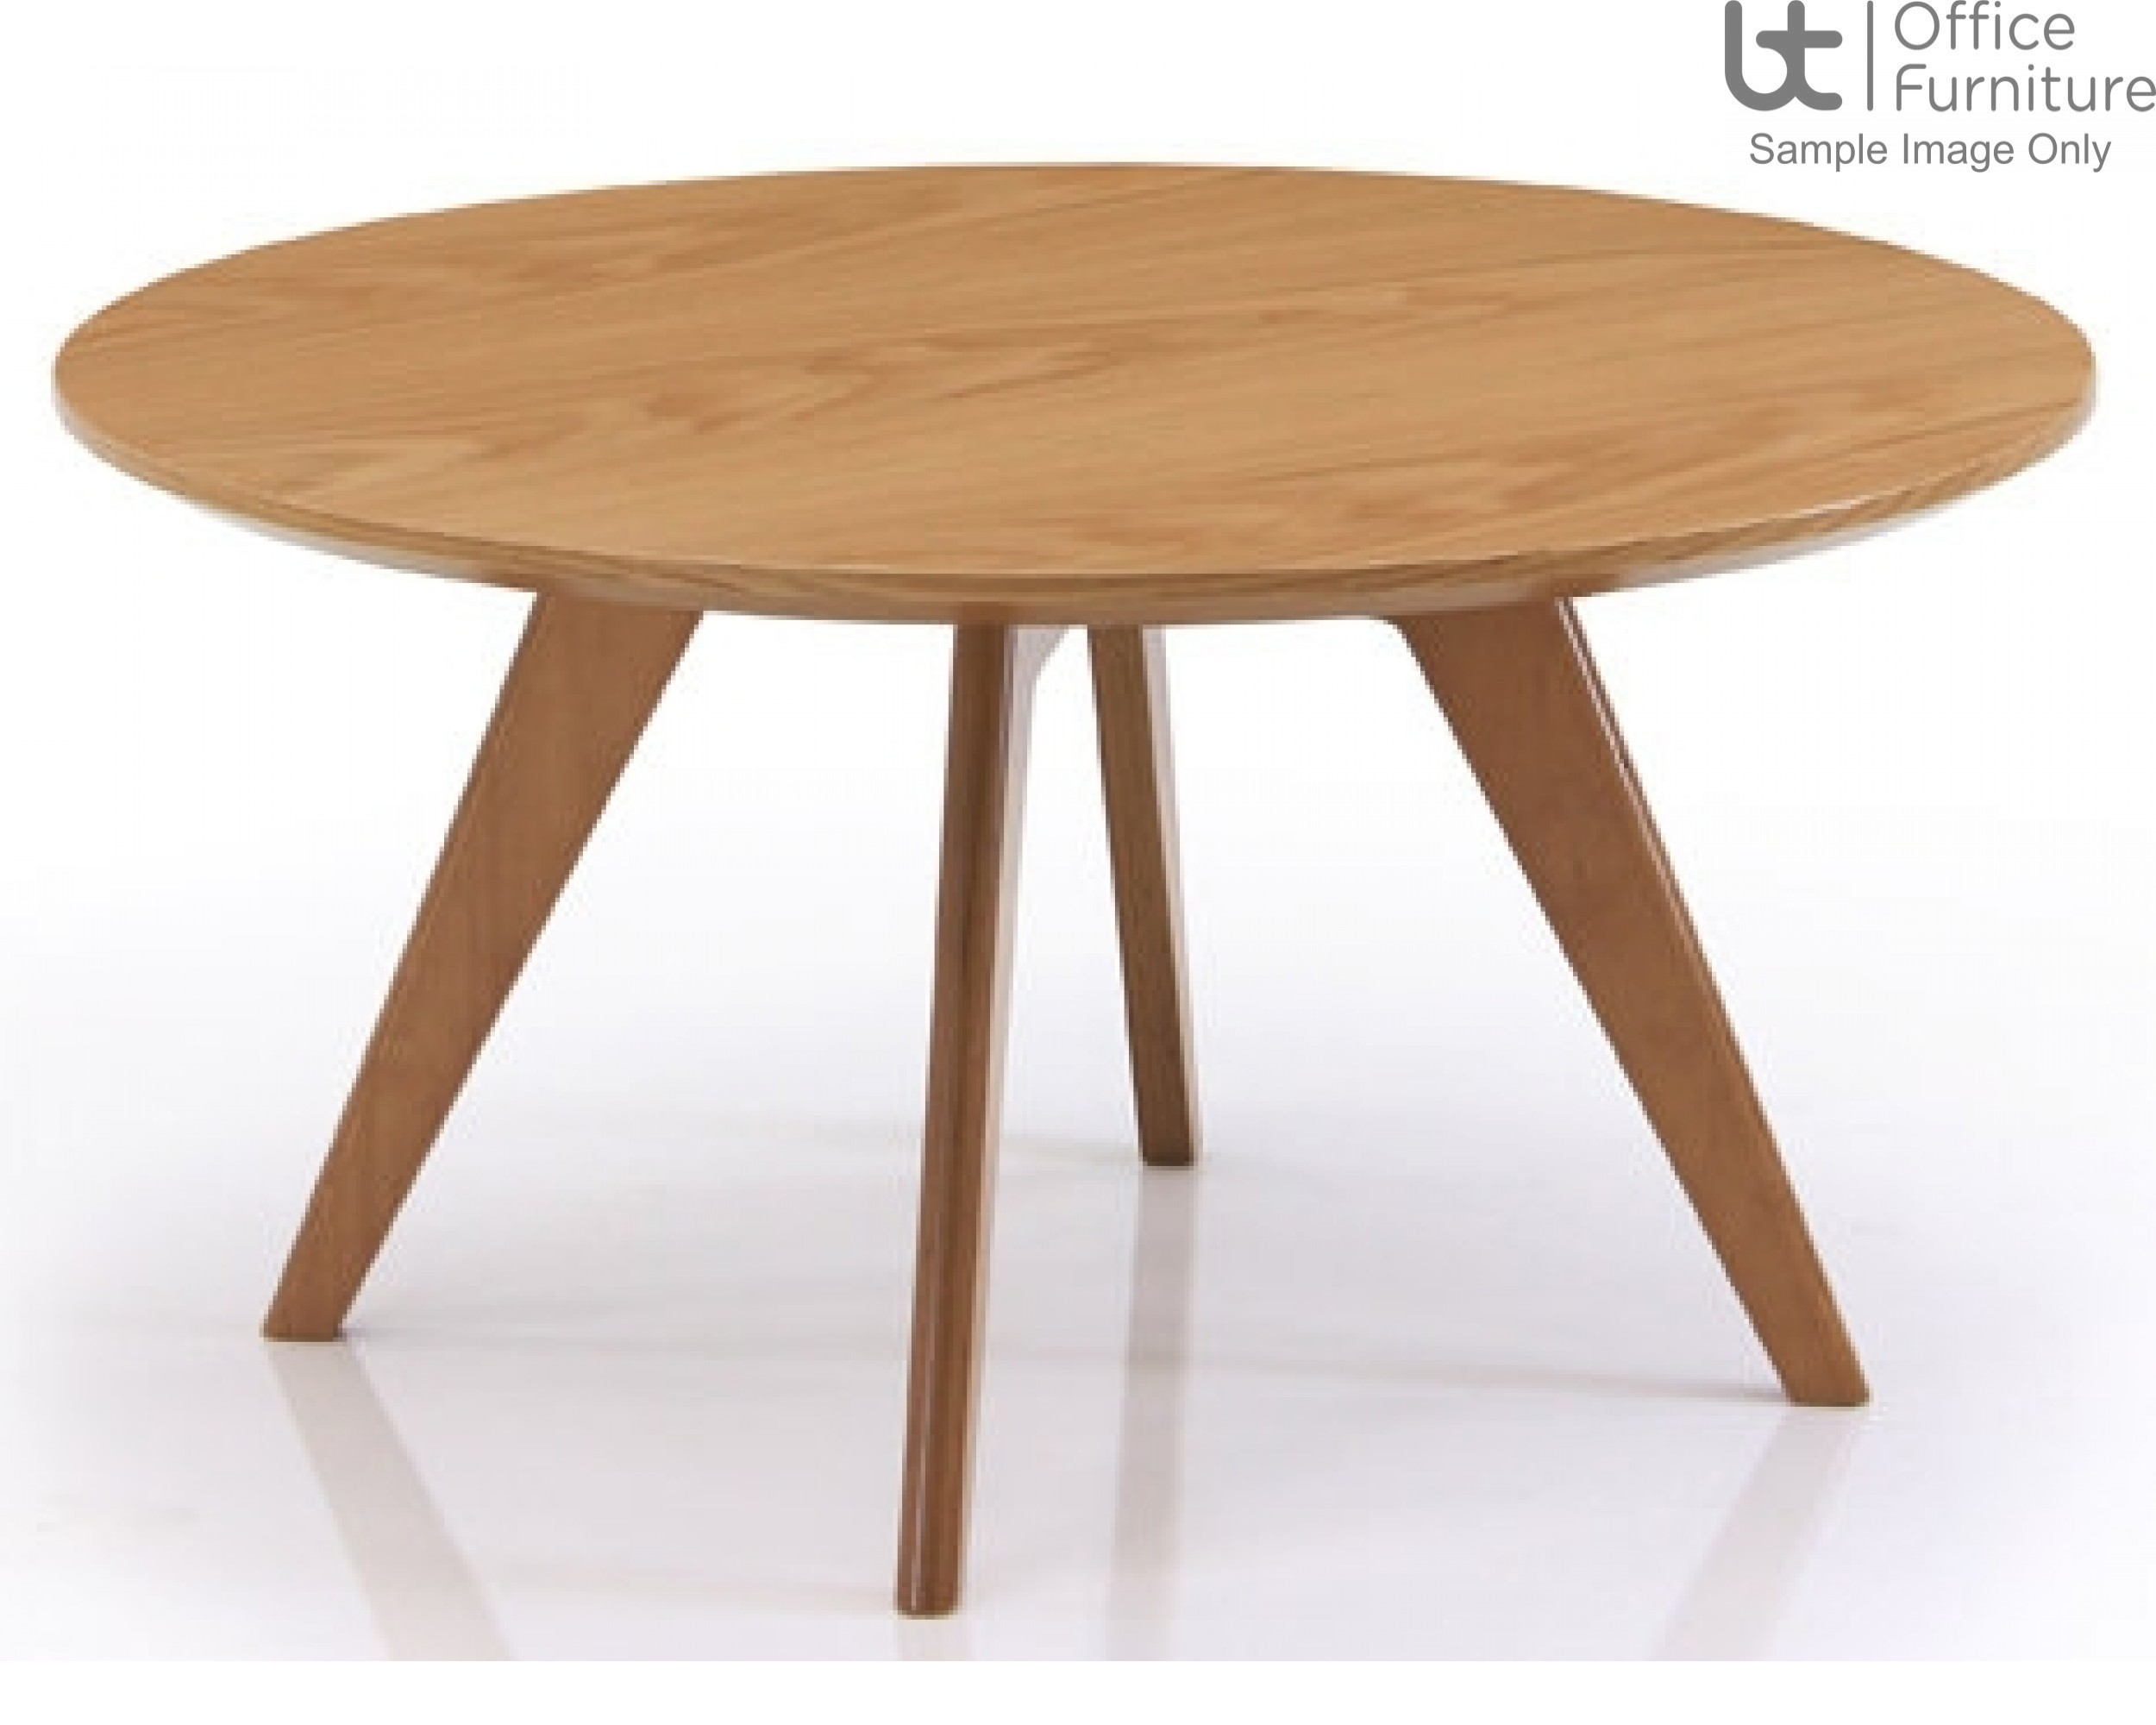 Verco Soft Seating - Danny MFC Circular Coffee Table with Solid Oak Wood Frame